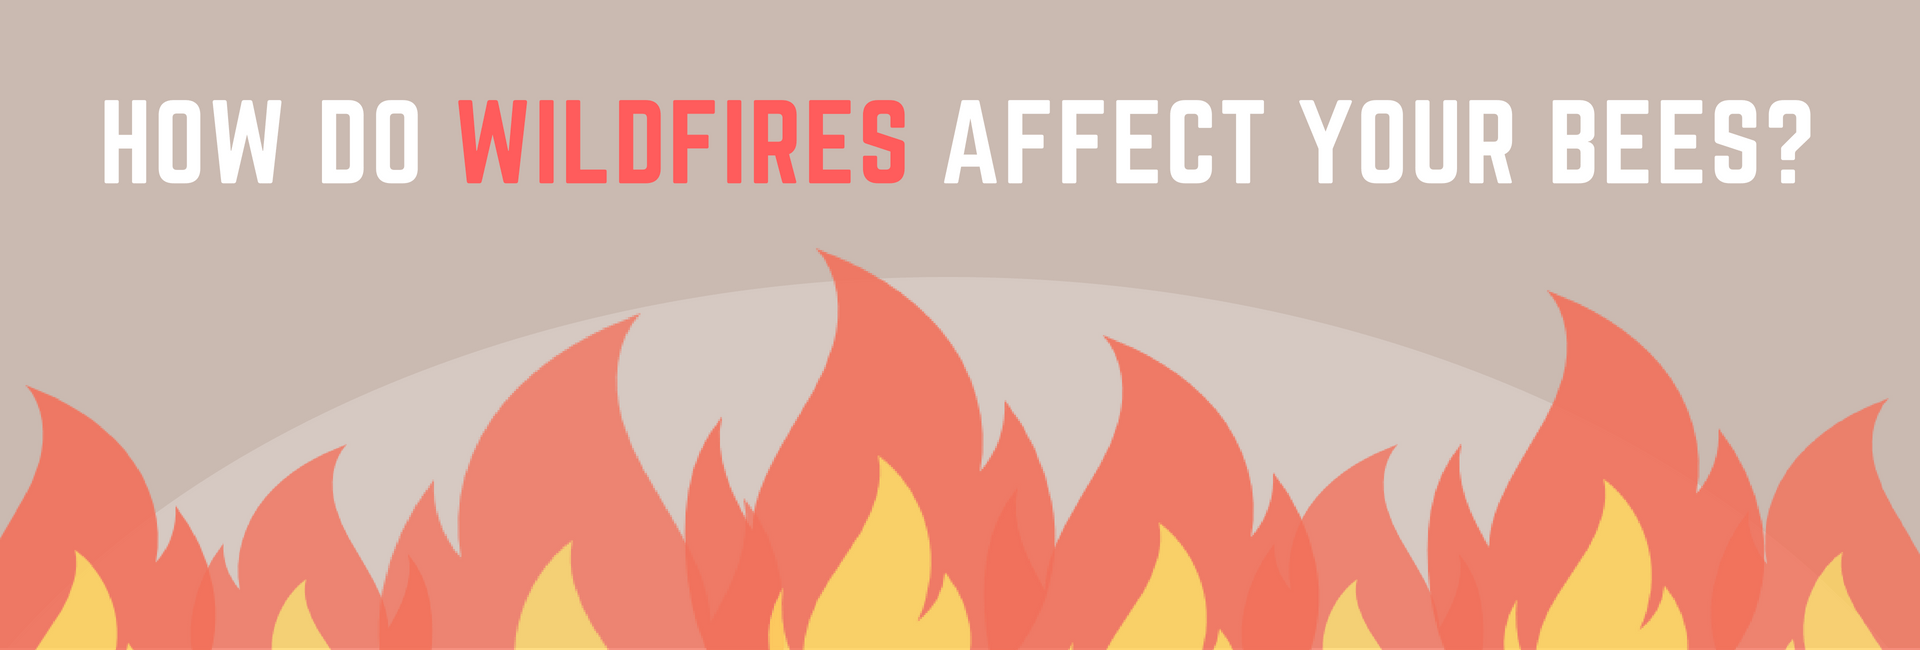 How Do Wildfires Affect Your Bees?